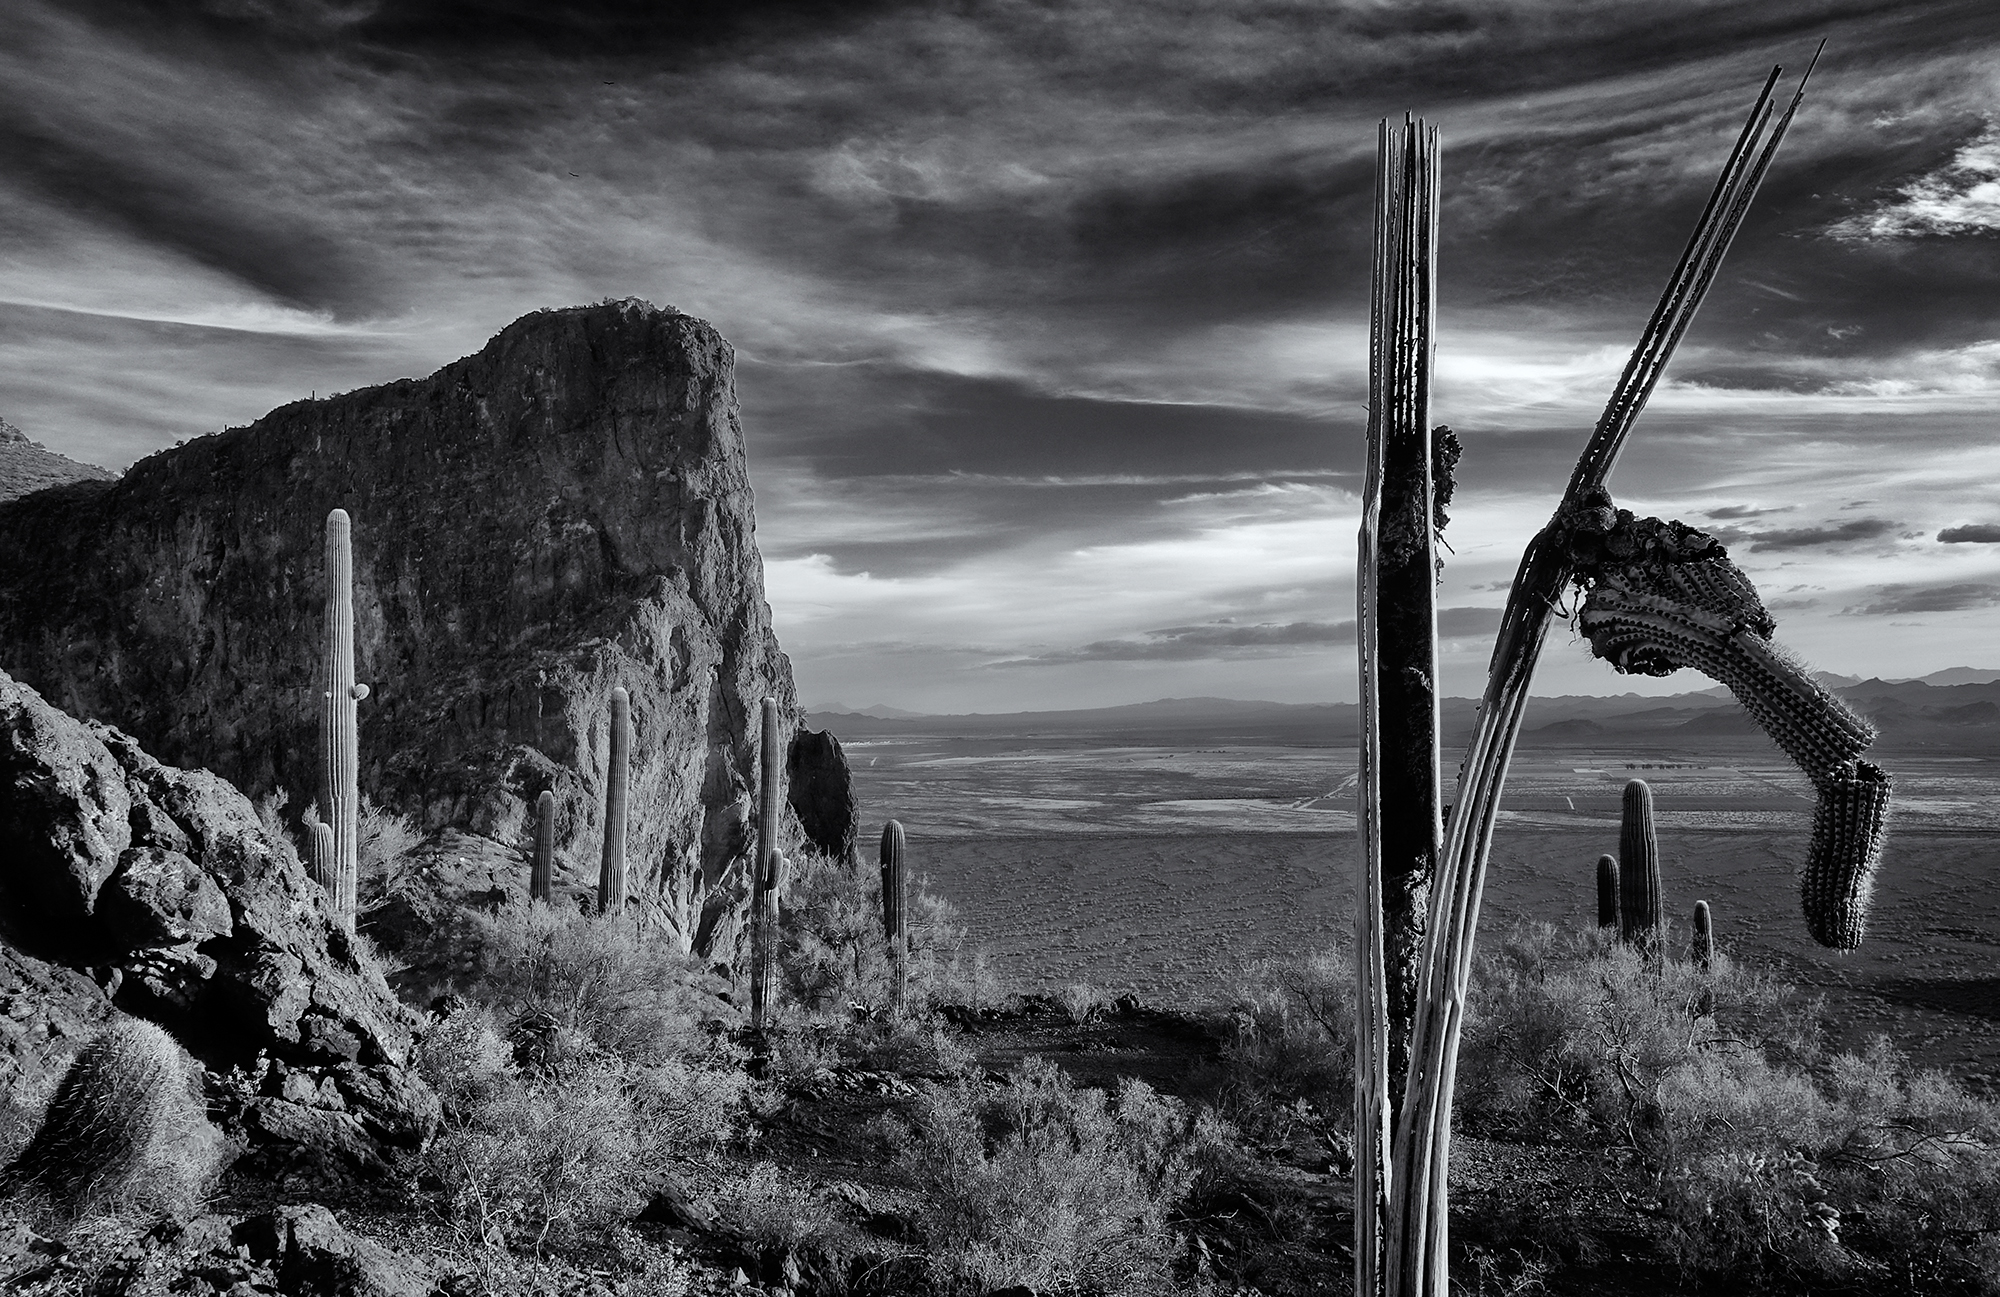 Skeleton View. Picacho Peak State Park, Arizona, 2016